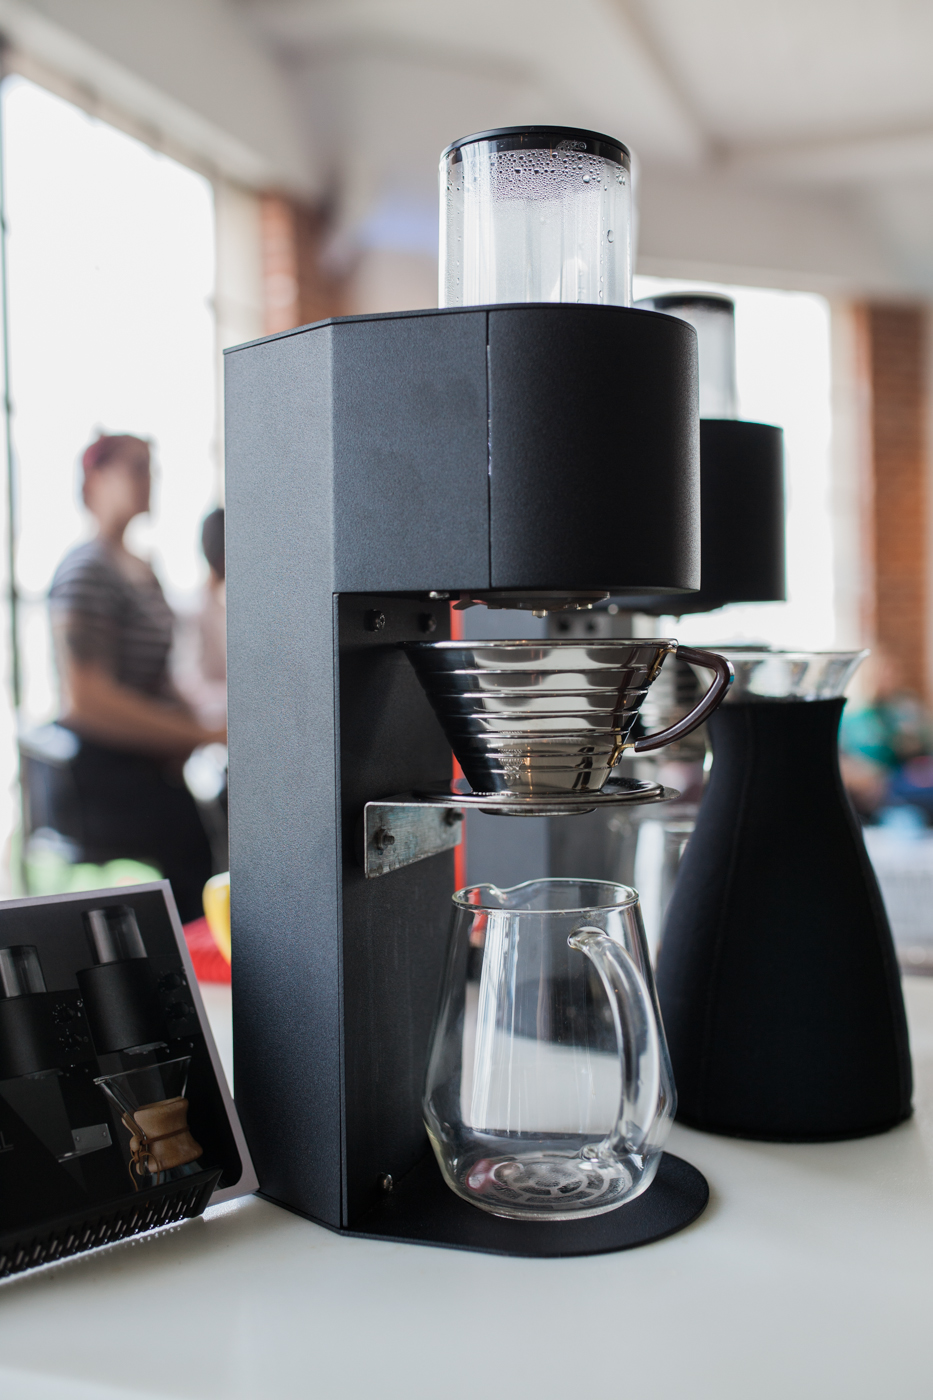 SP9 Chemex Brewer by Marco. Photo by Julie Rings.